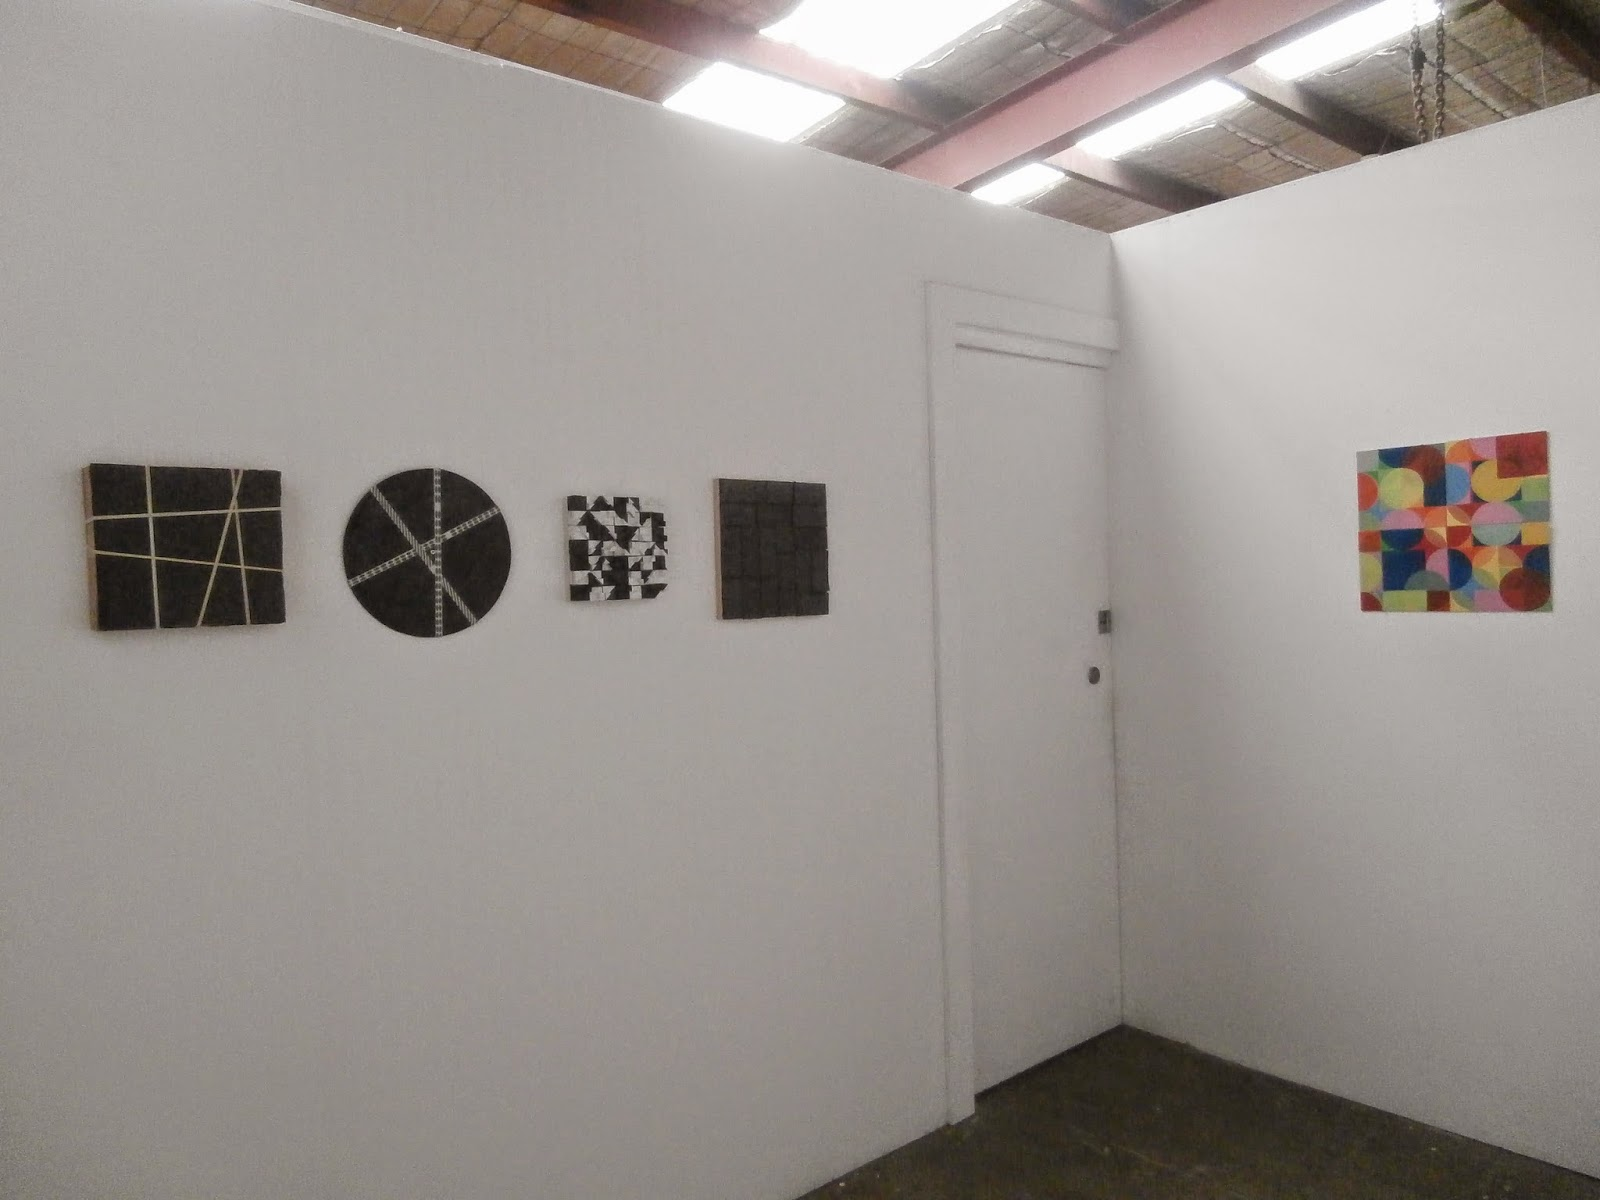 circle installation, directors show, marlene sarroff, kate mackay, painting, factory 49, geometric abstraction, non objective